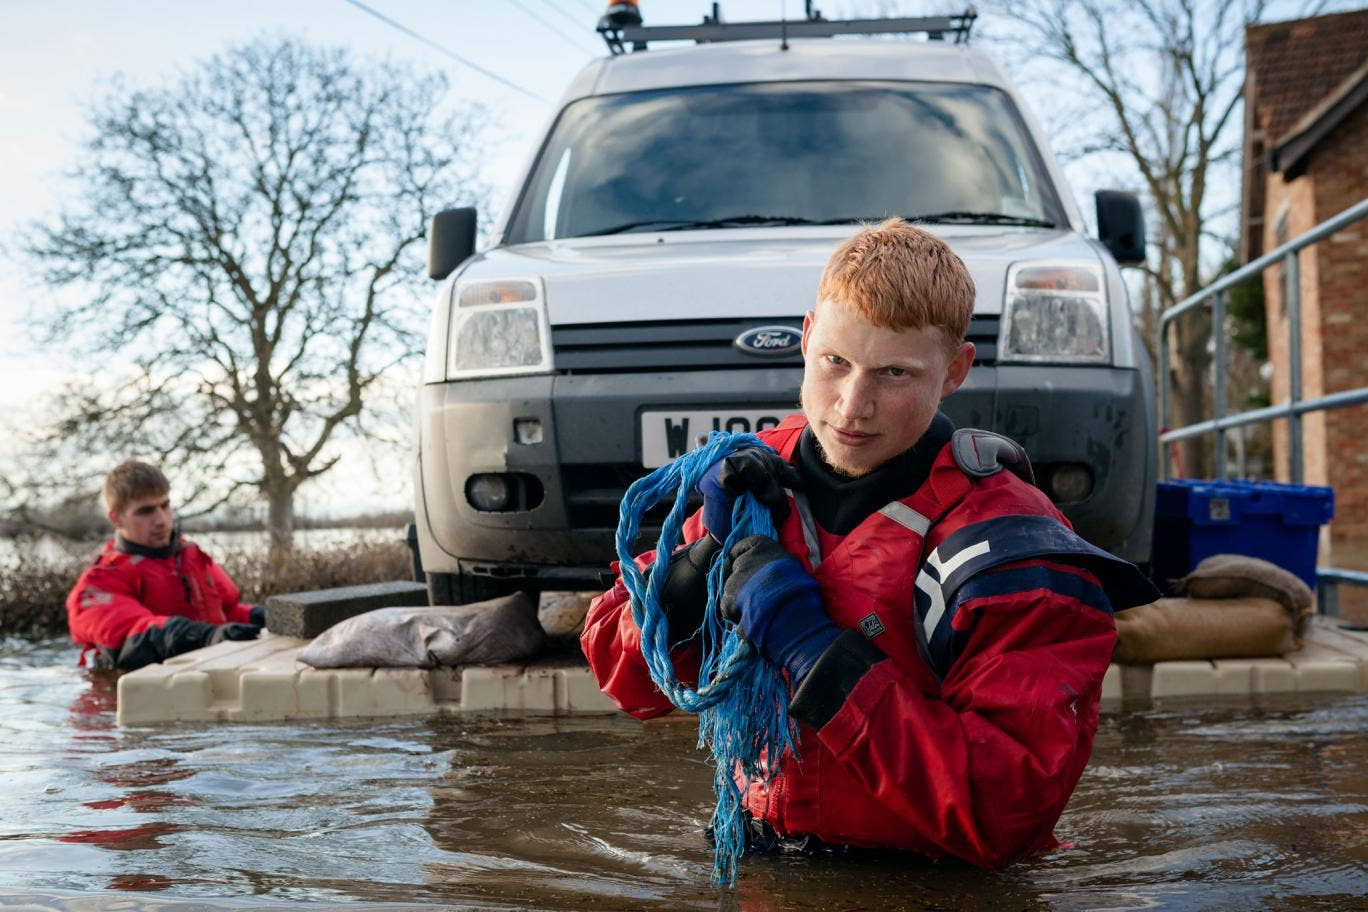 FLAG volunteers Aaron and Jay transport a trapped Environment Agency van over the flood waters on a floating pontoon